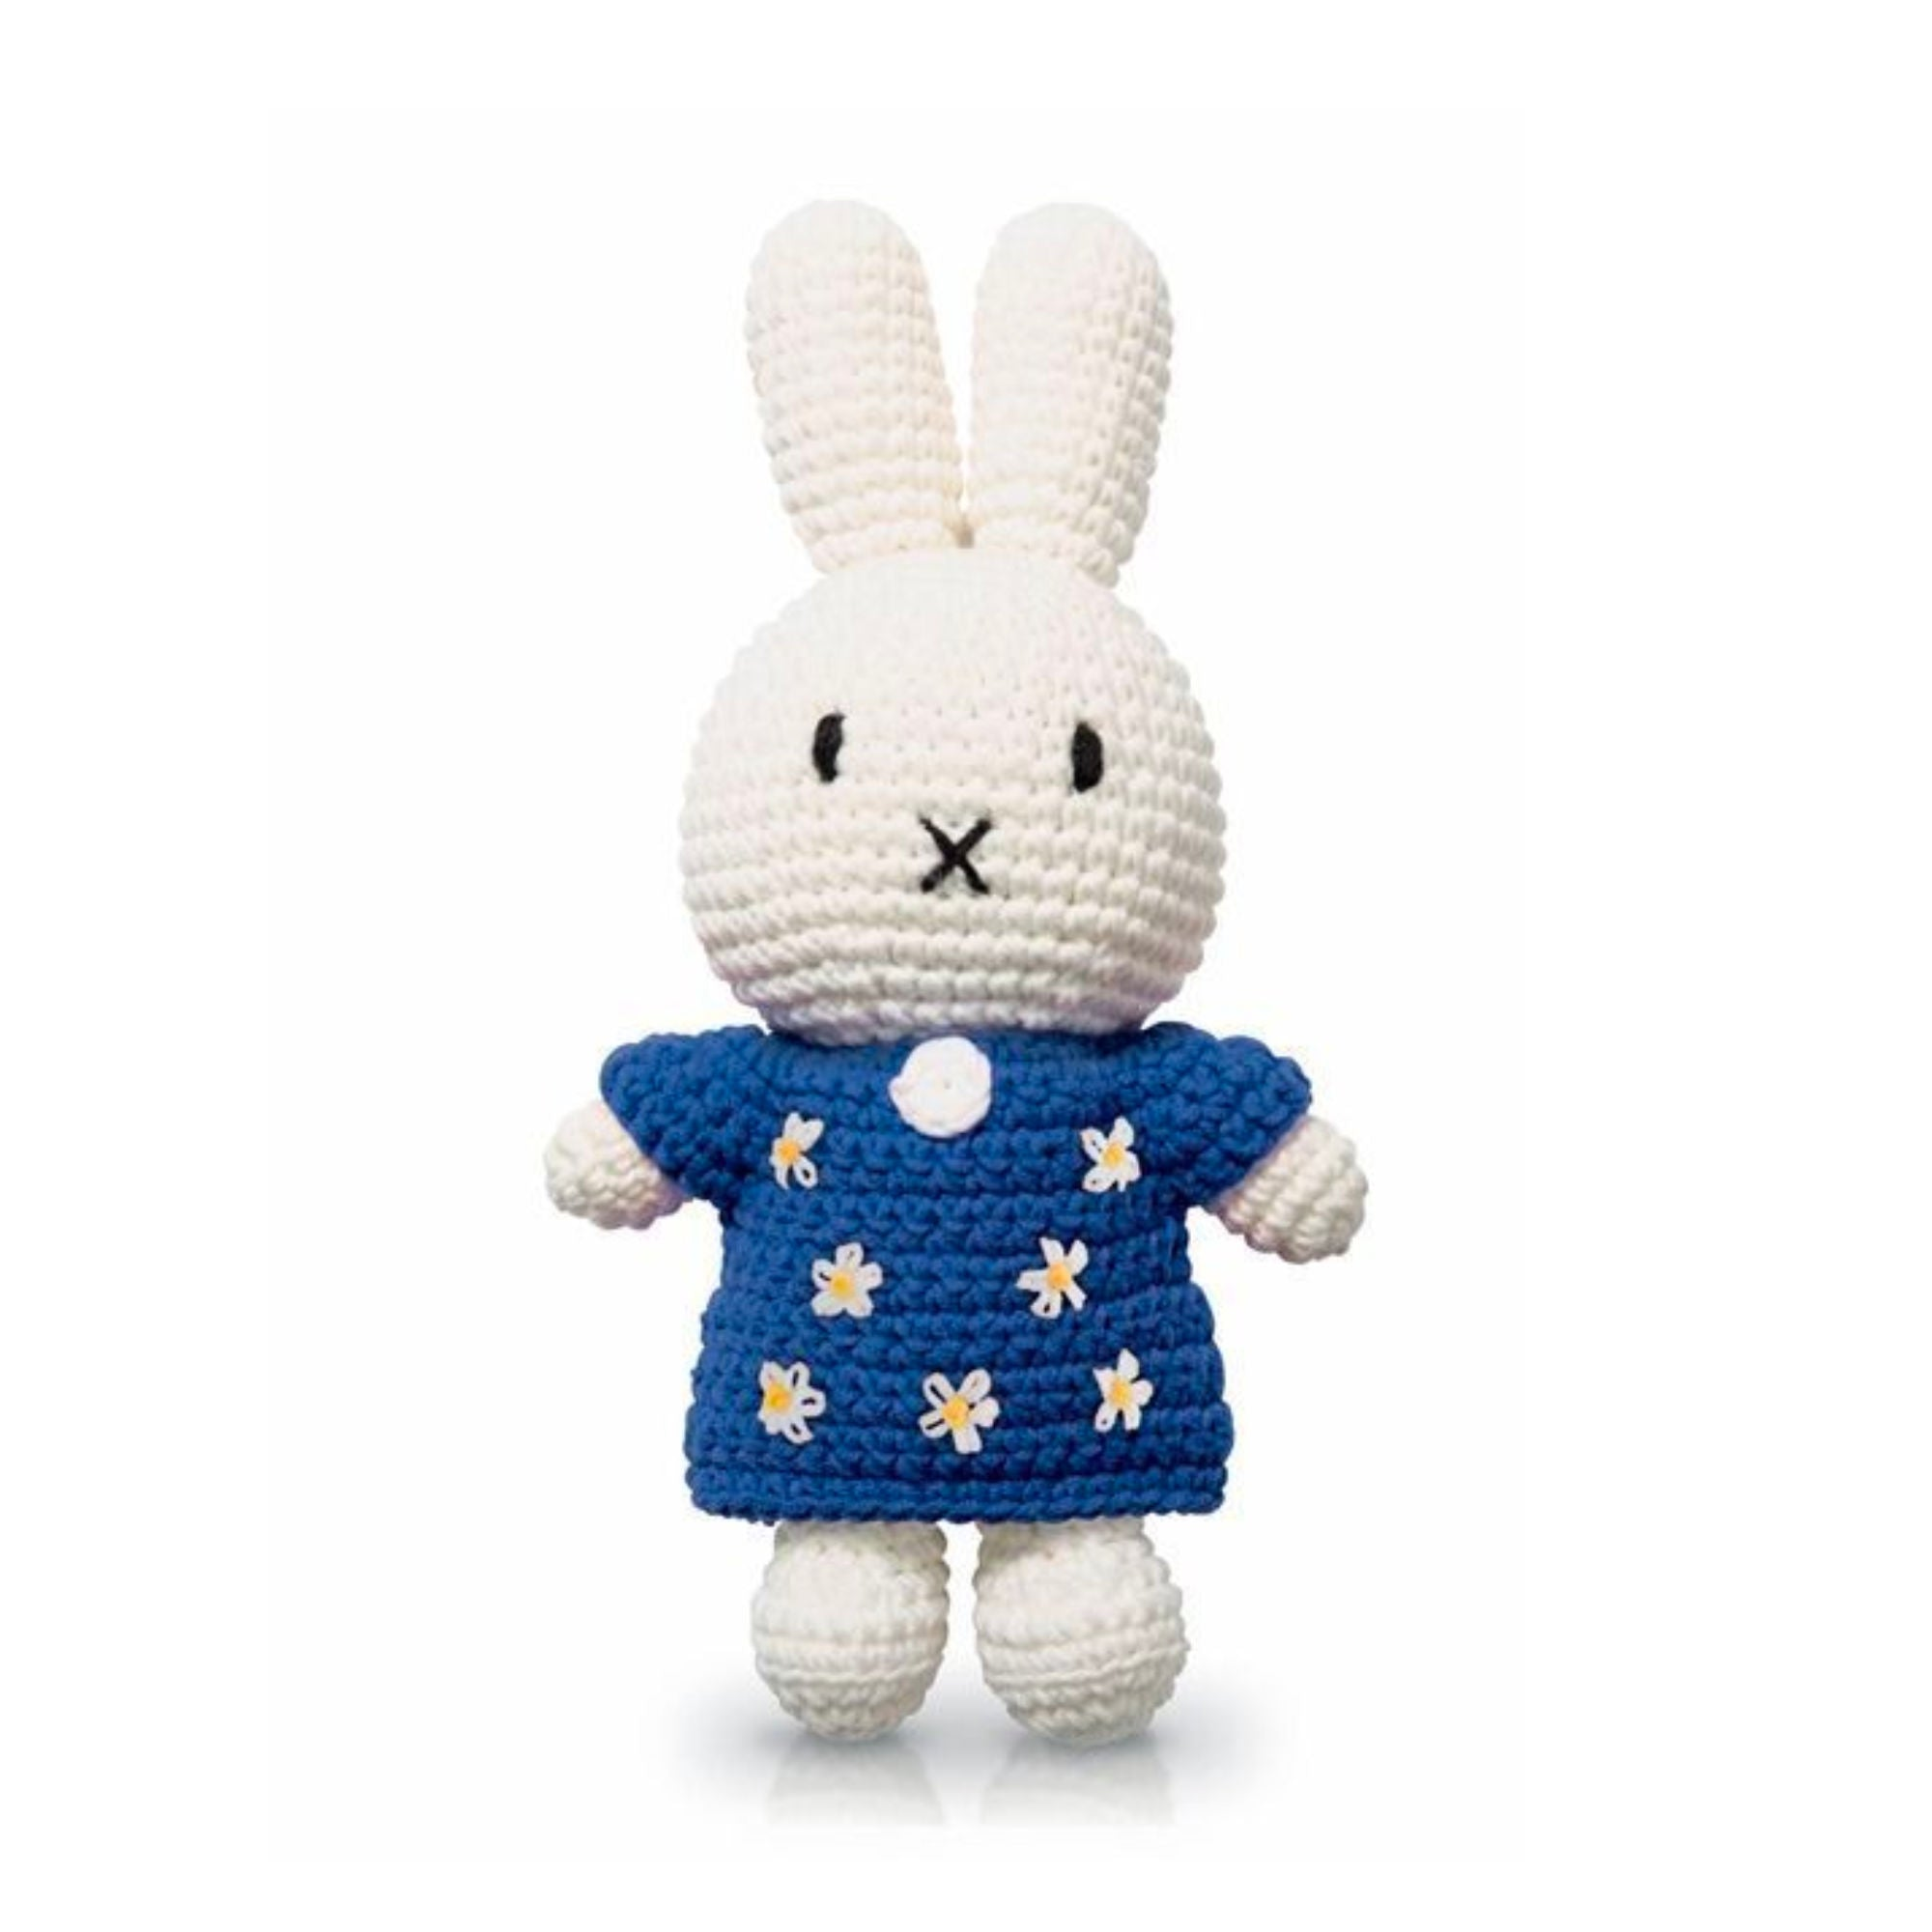 Just Dutch handmade doll, Miffy and her blue flower dress